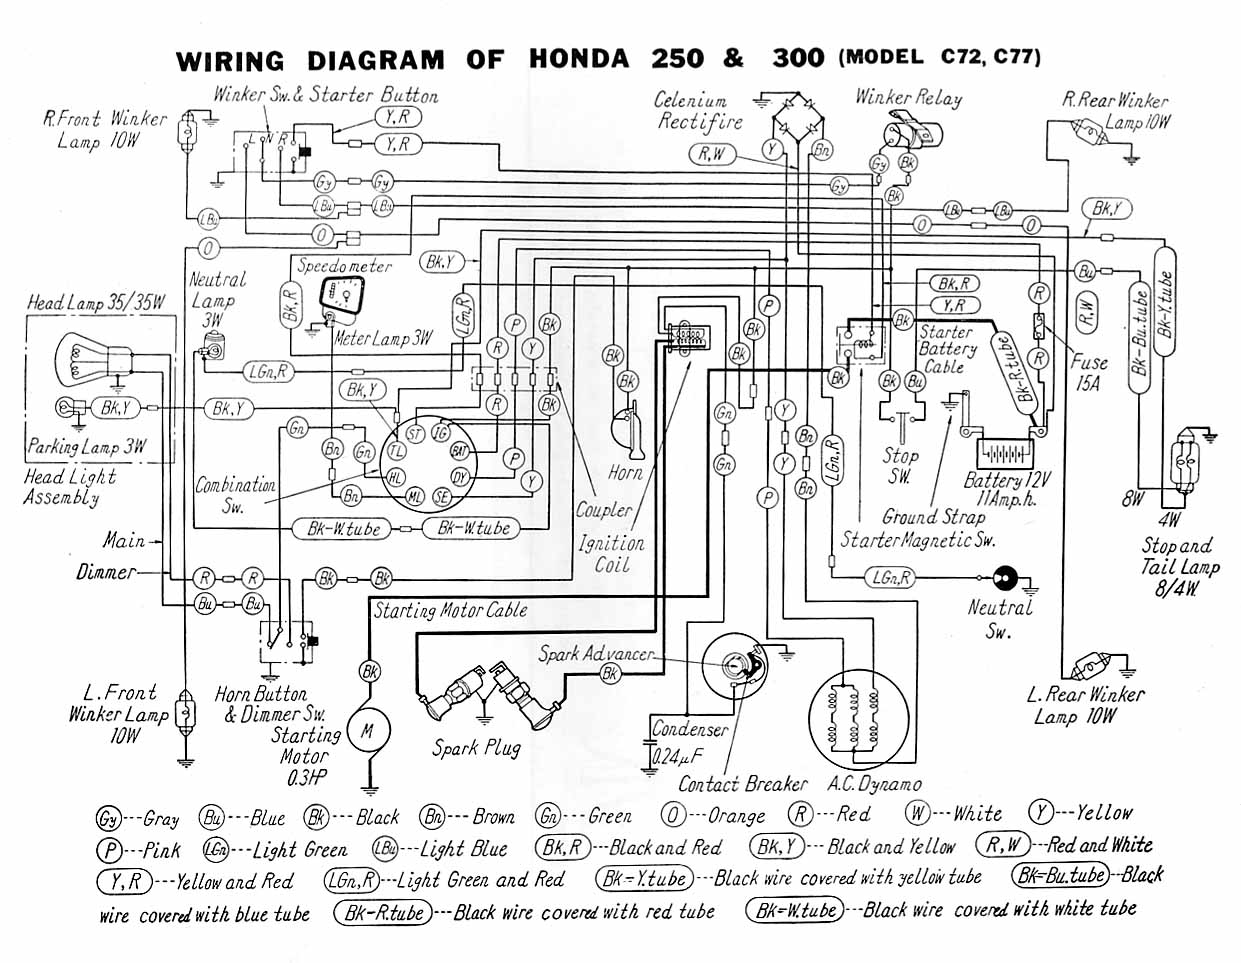 Honda Unicorn Electrical Wiring Diagram - Trusted Wiring Diagram •